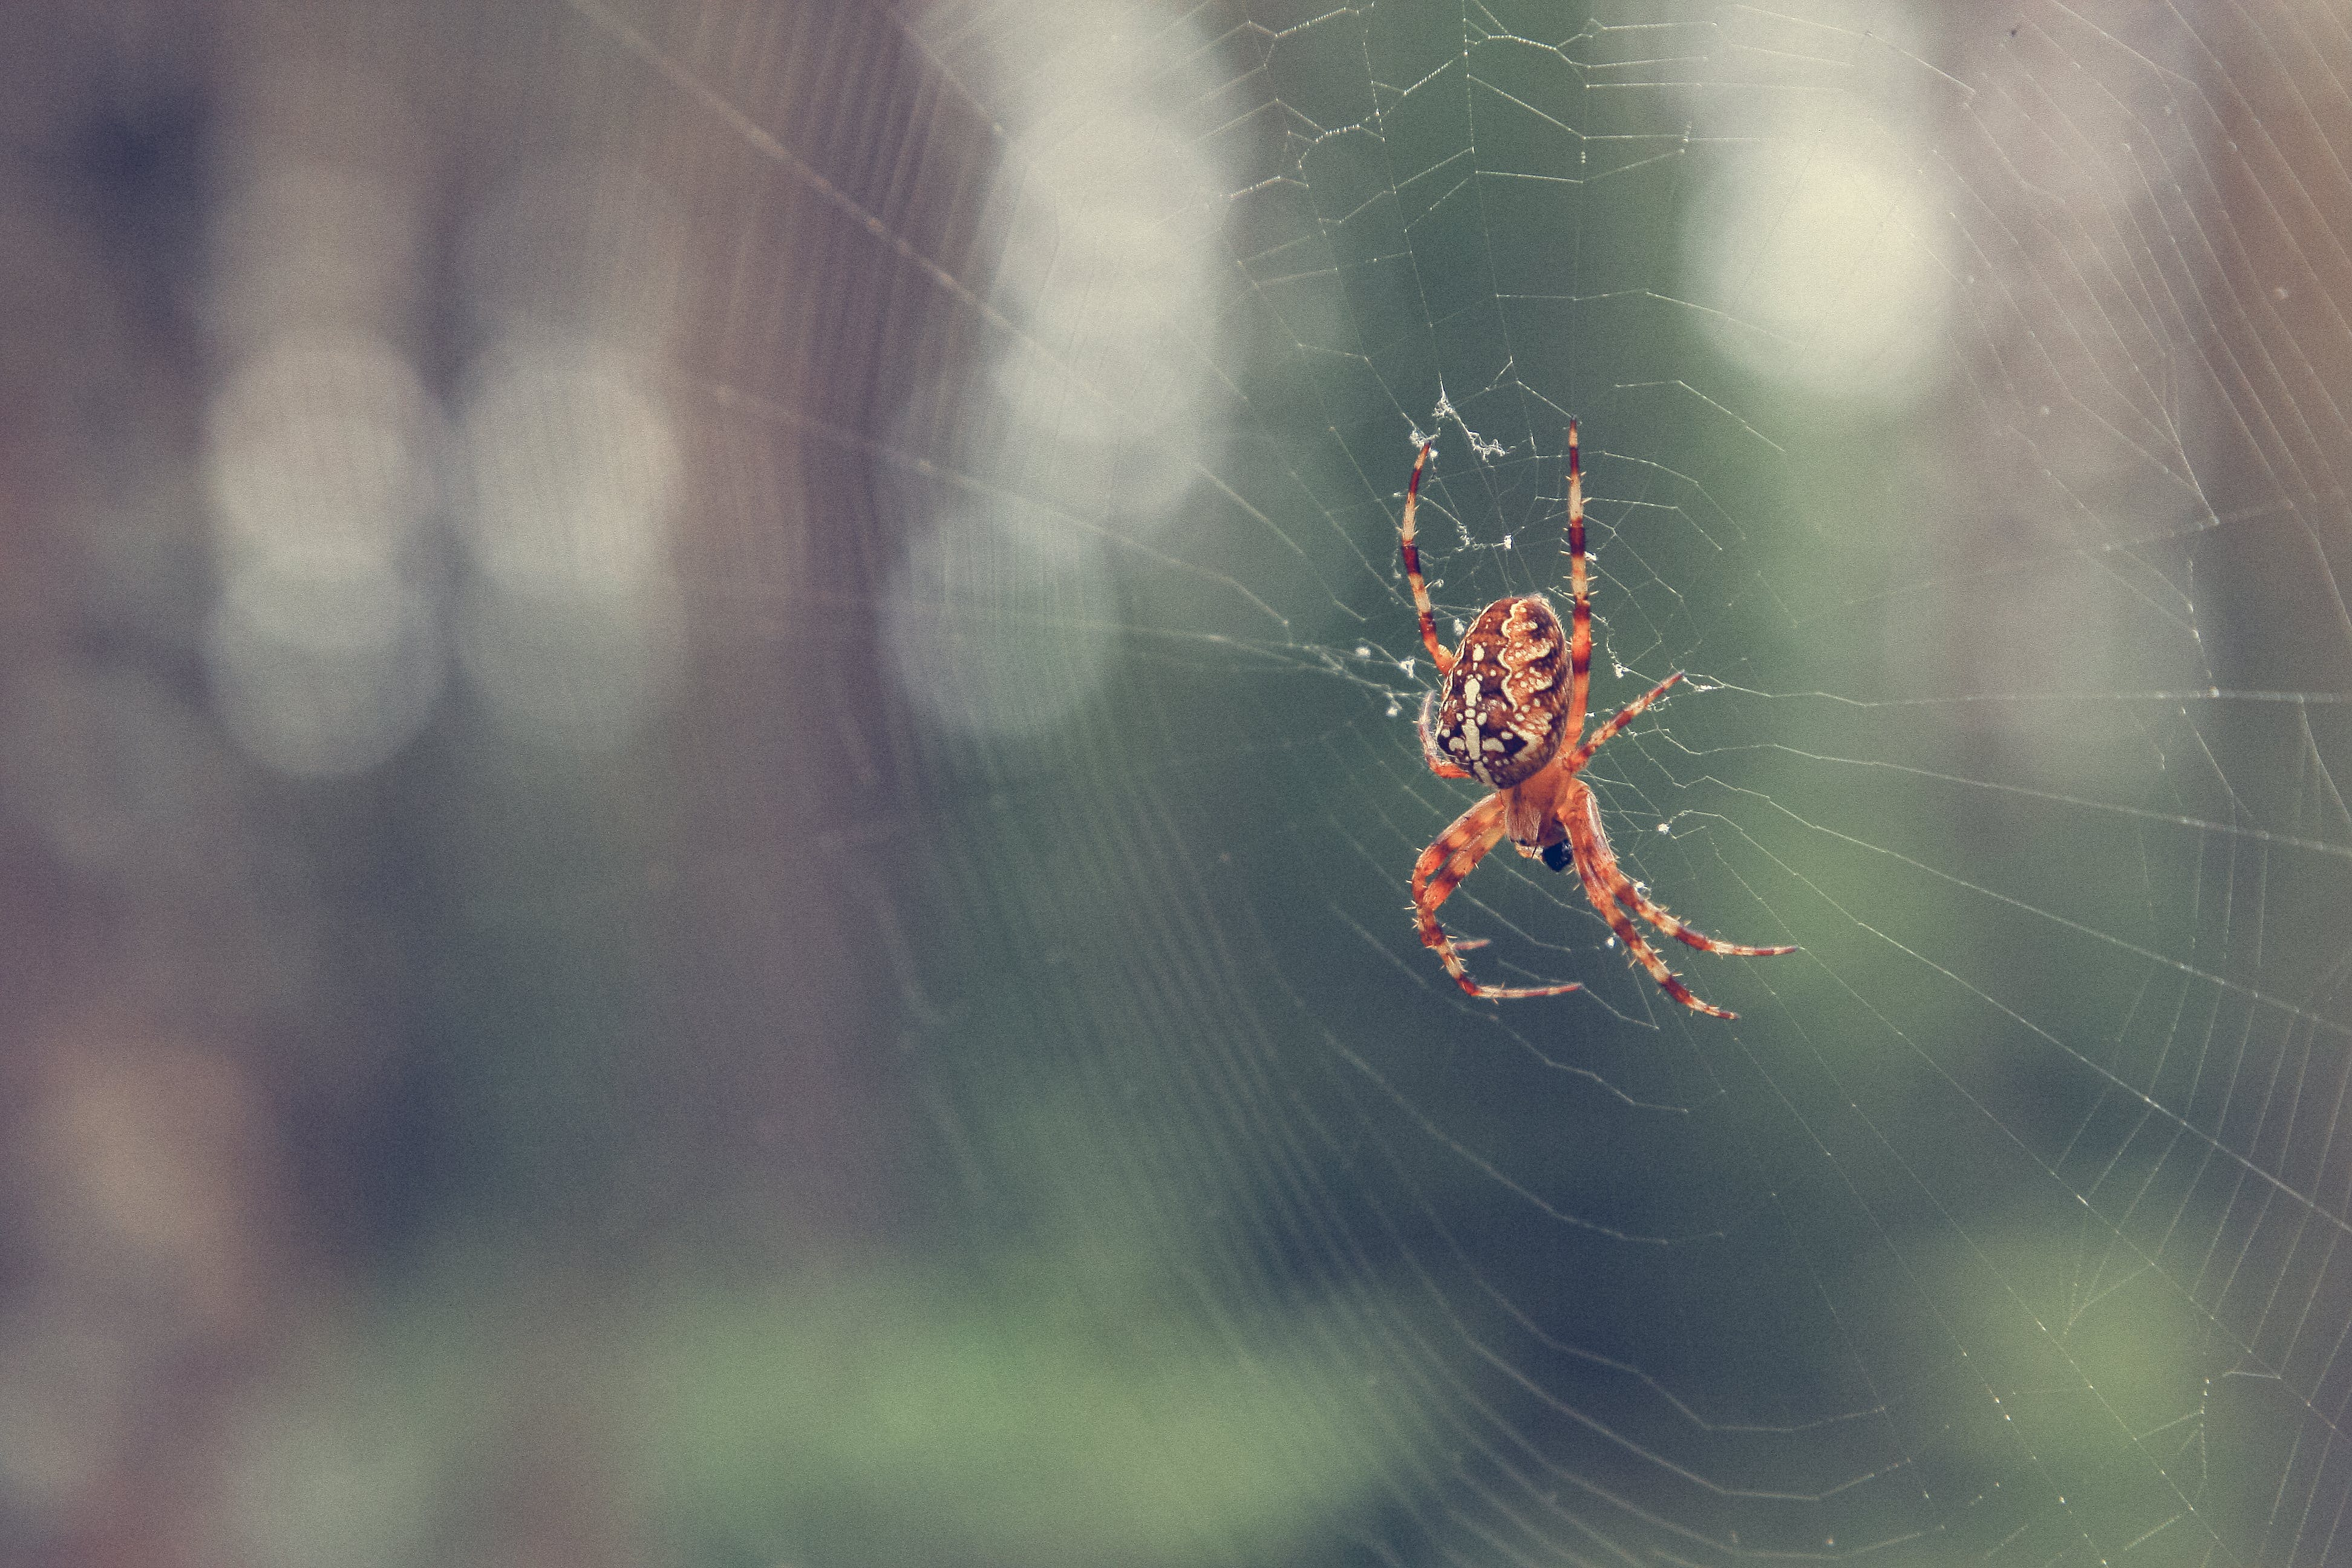 Free stock photo of forest, autumn, spider, spider's web